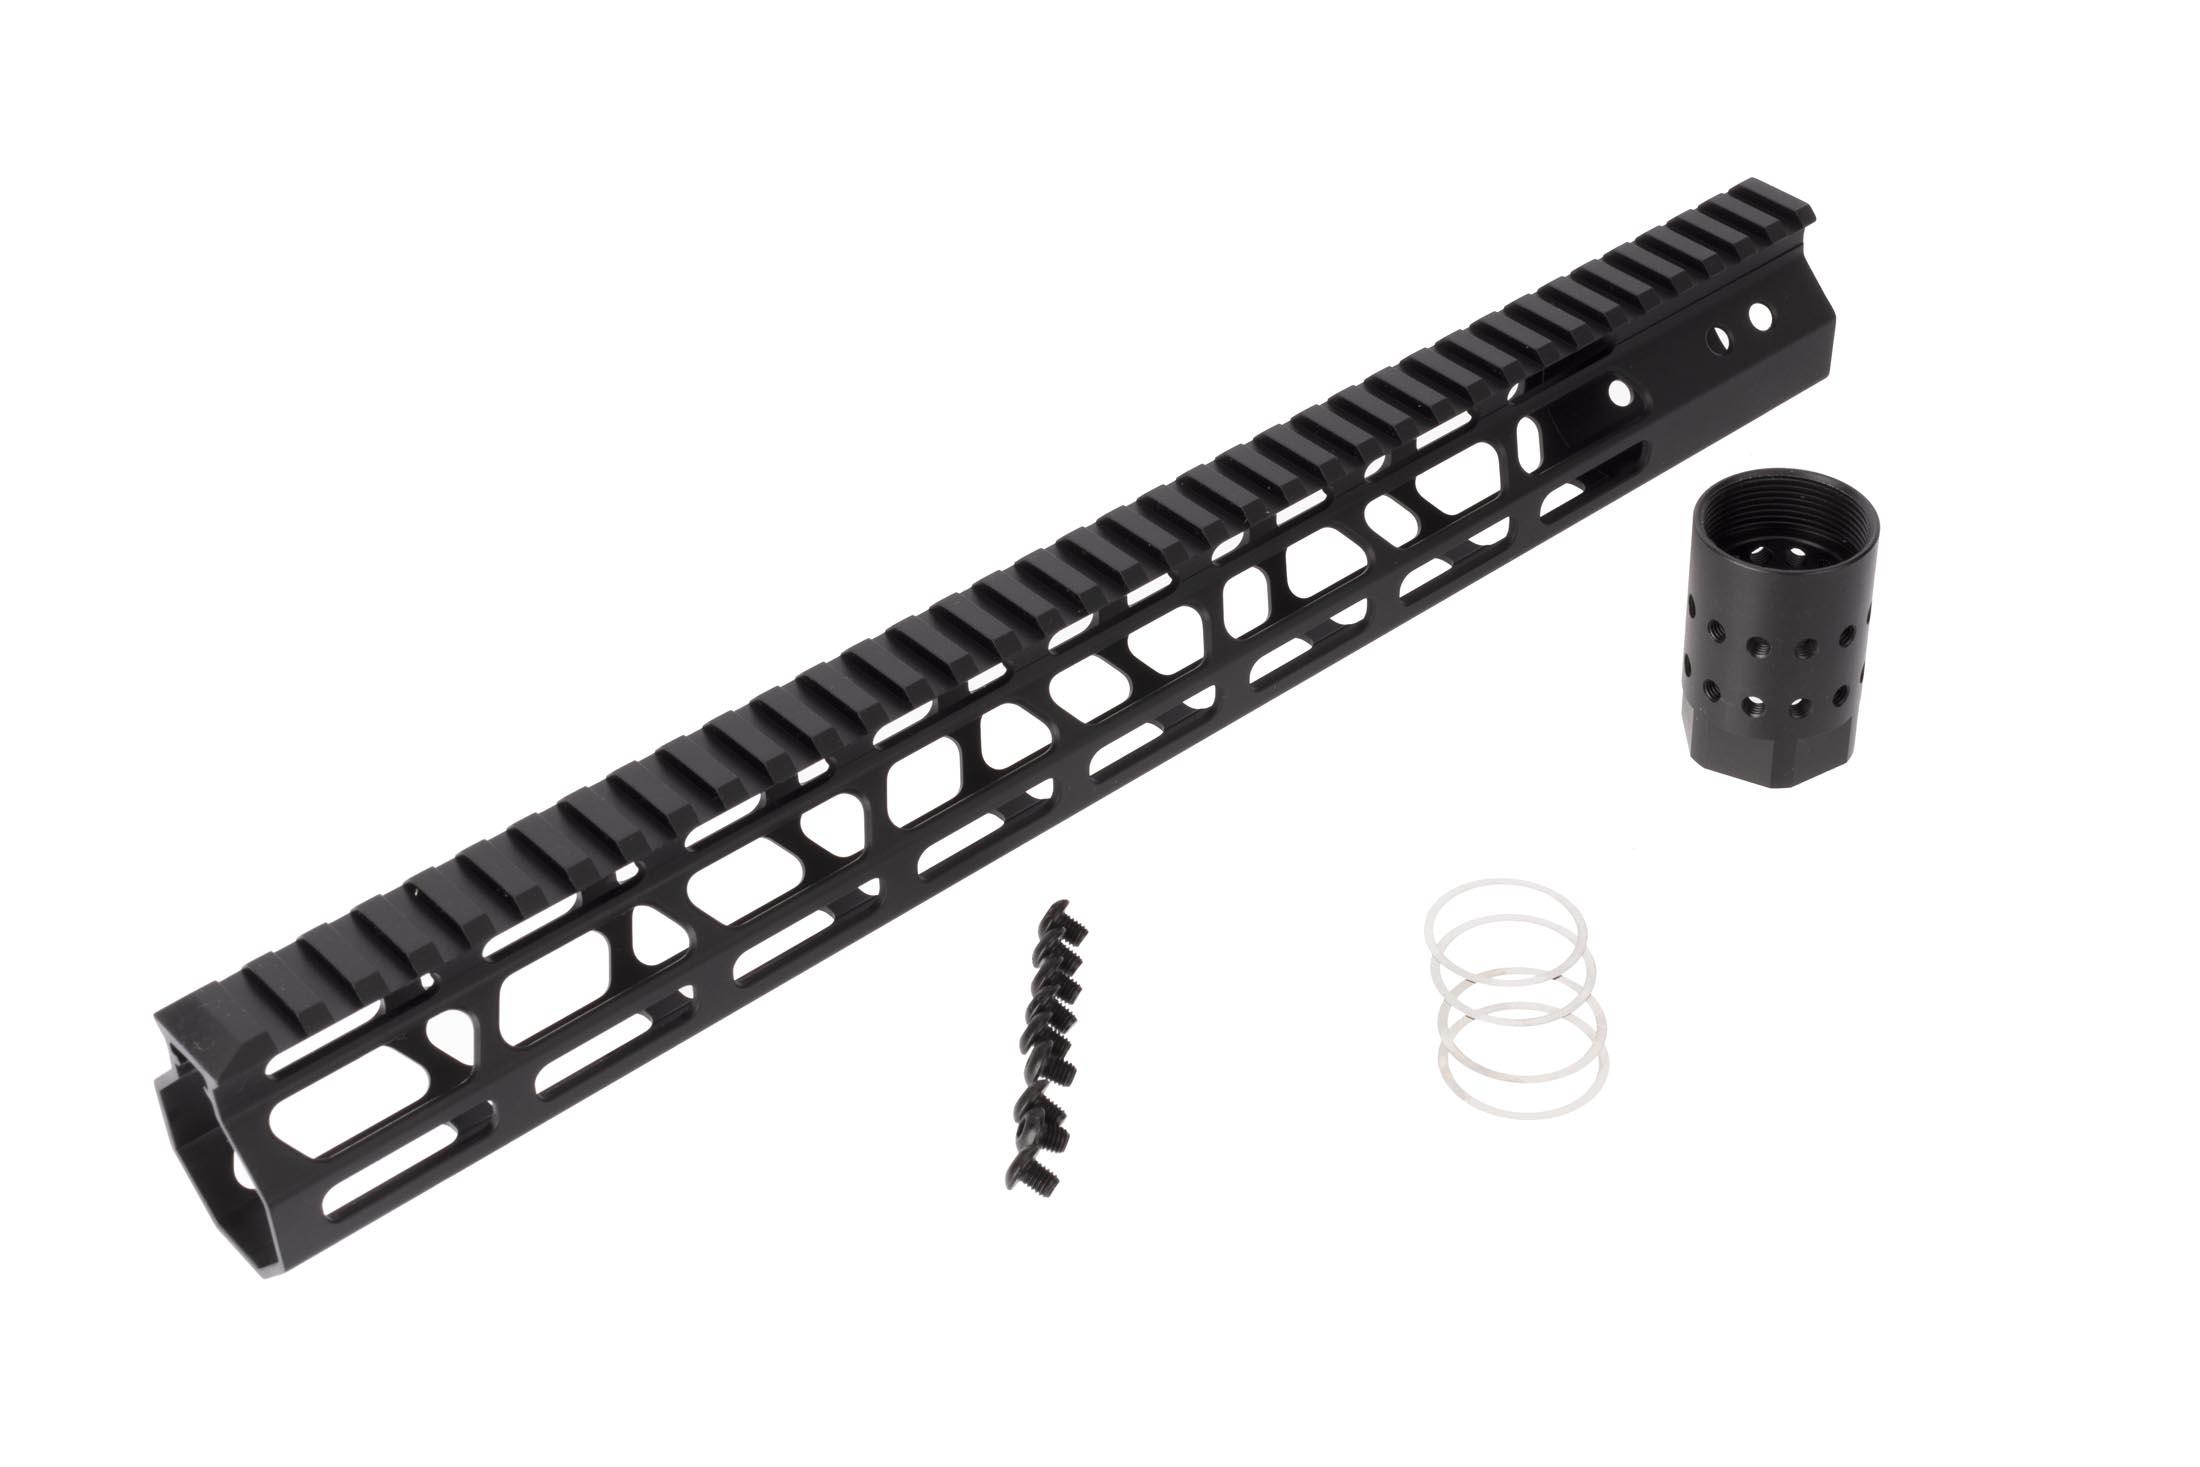 FM Products ultra light free float M-LOK handguard provides 15 inches of real estate for accessories and includes mounting hardware.